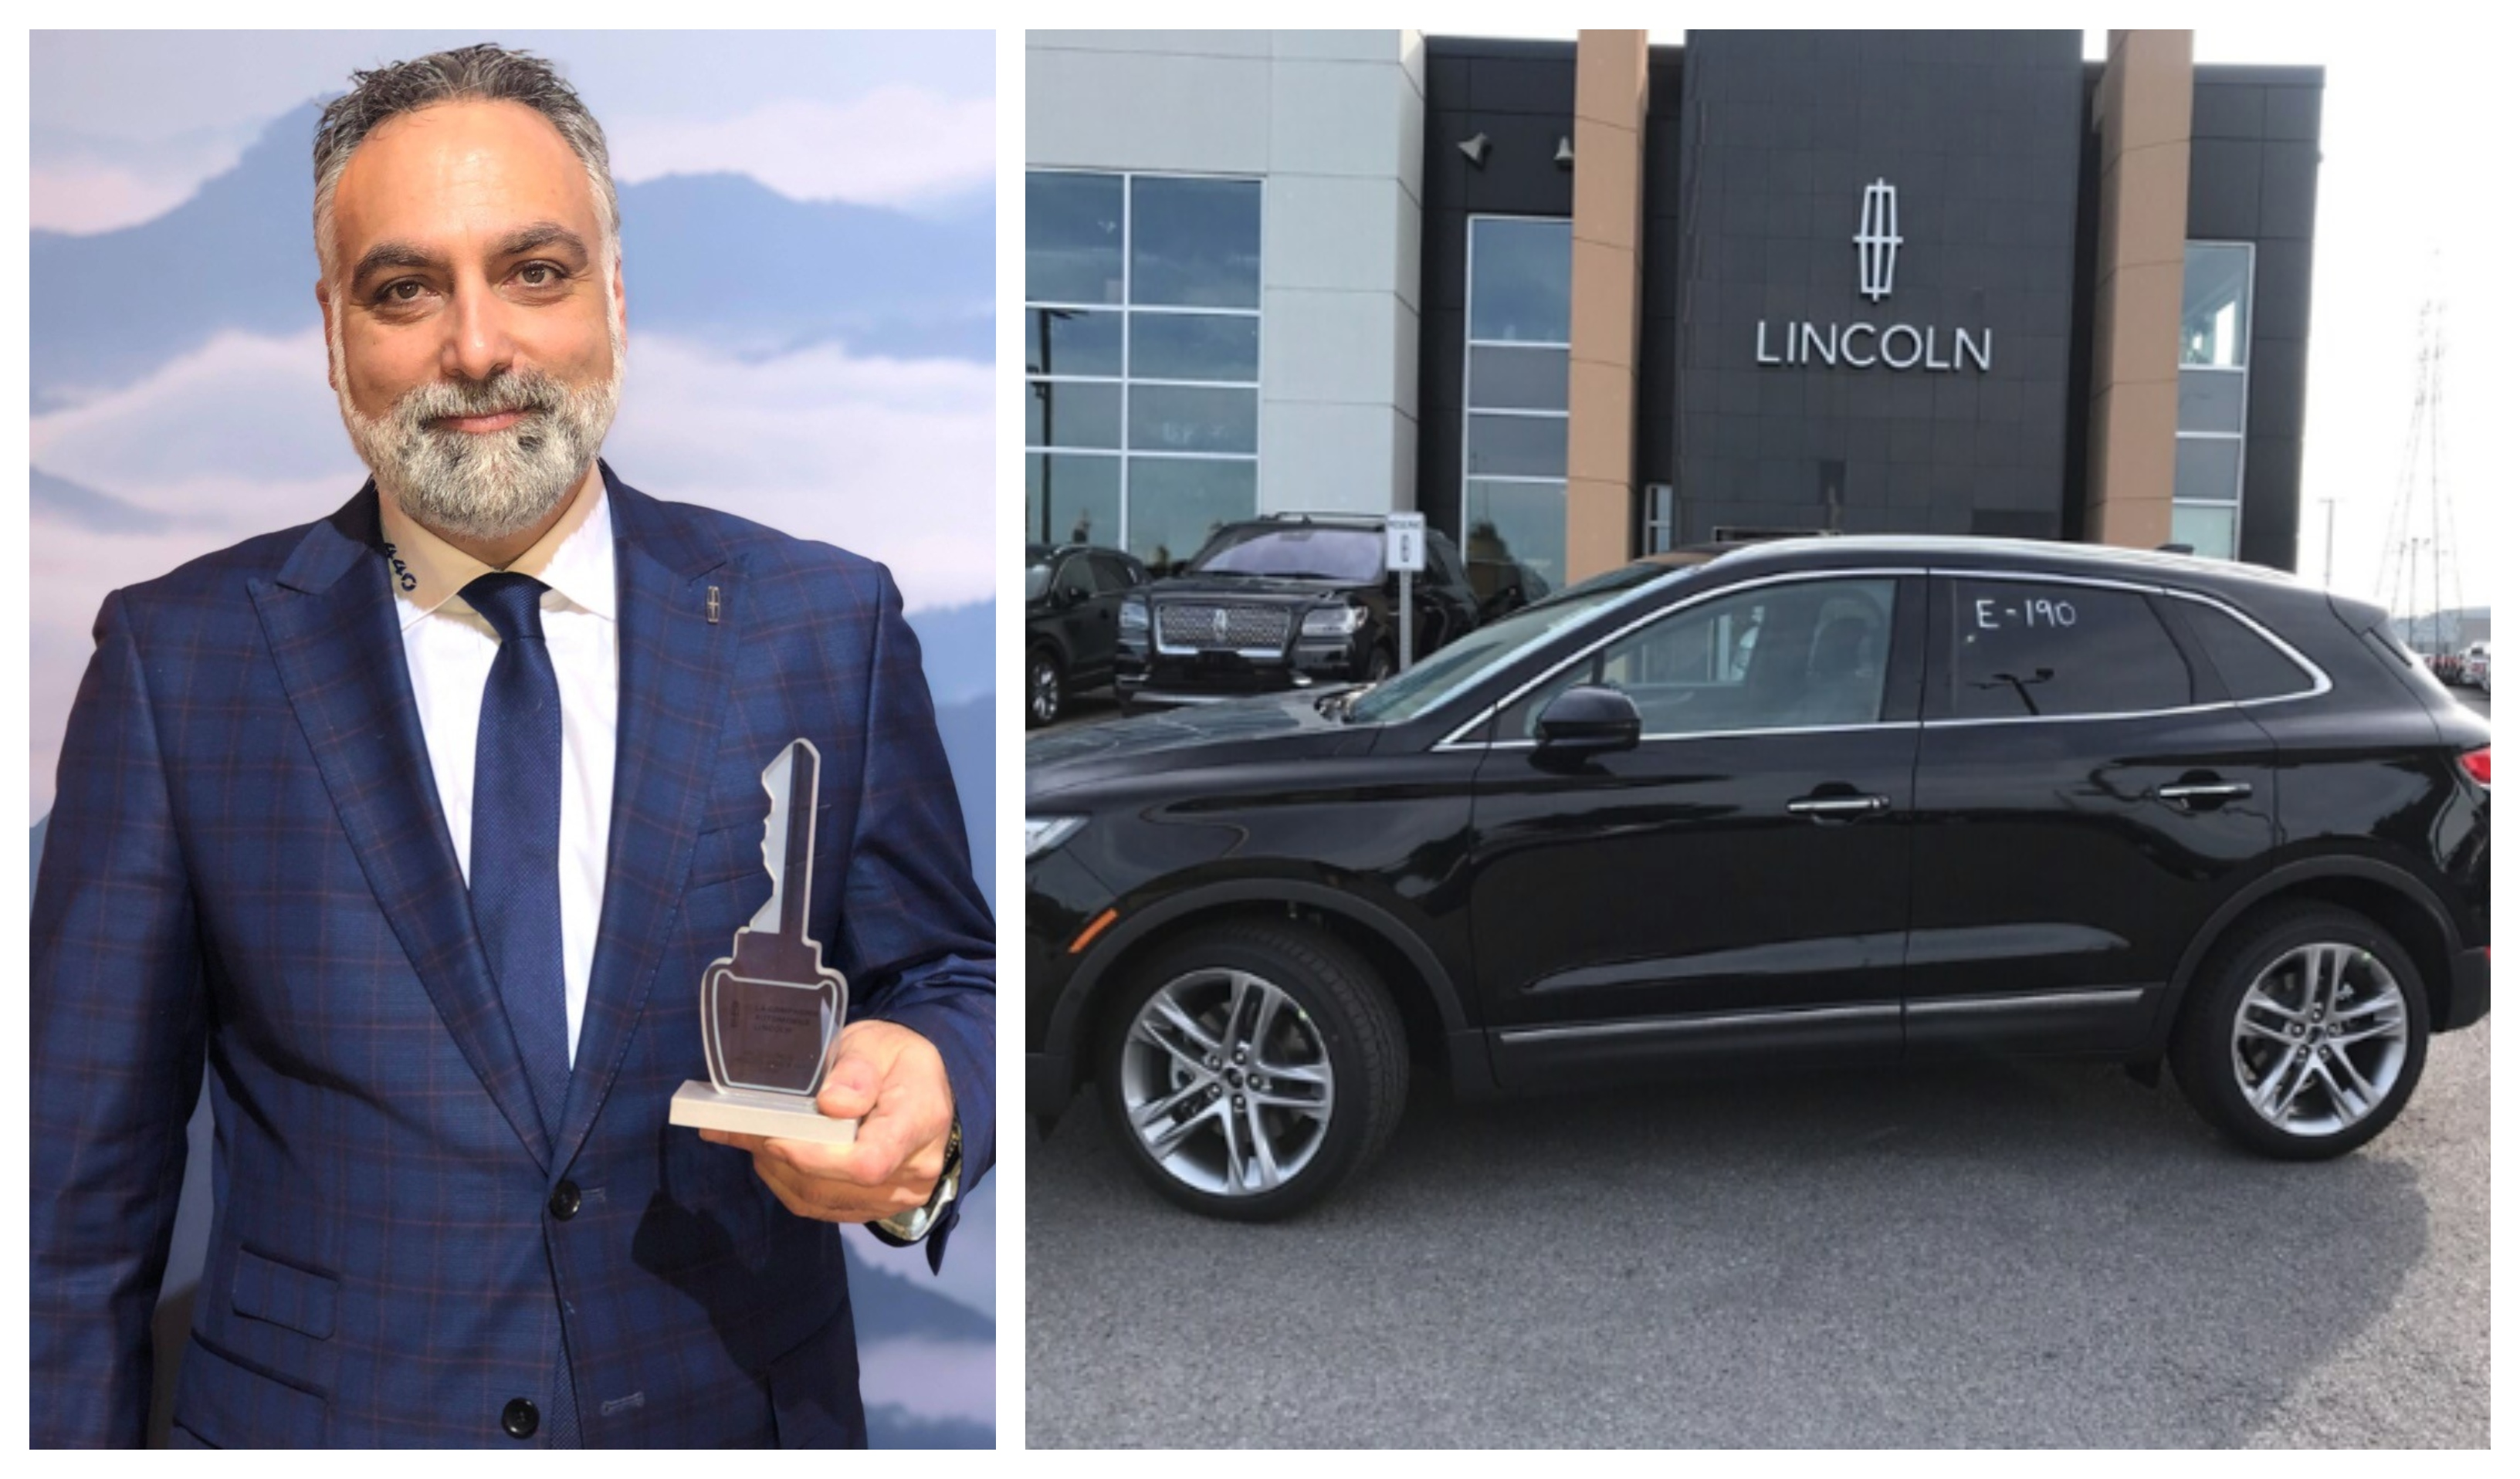 La concession 440 Lincoln Laval la plus performante du Québec en 2019